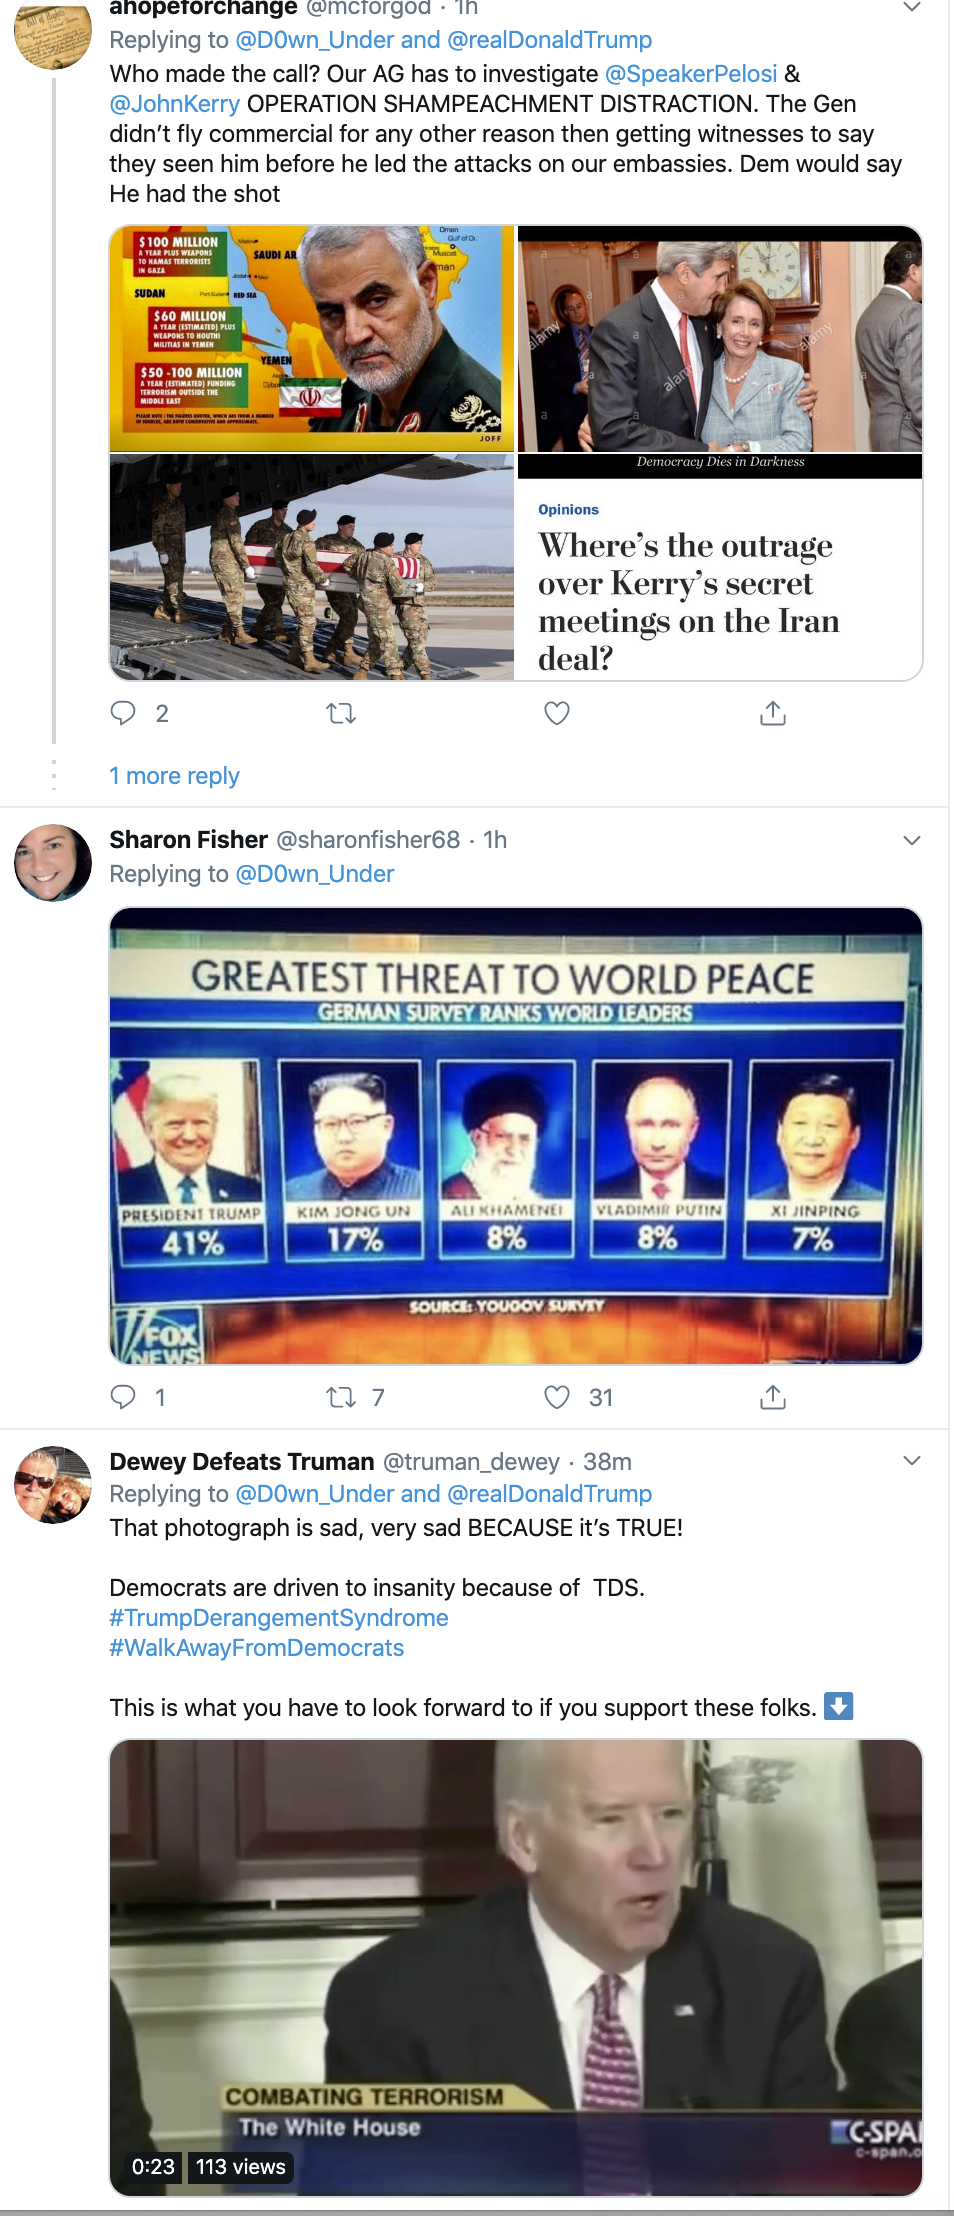 Screen-Shot-2020-01-13-at-9.26.13-AM People Flip Out After Trump Tweets Racist Anti-Muslim Meme Election 2020 Featured Impeachment Religion Top Stories